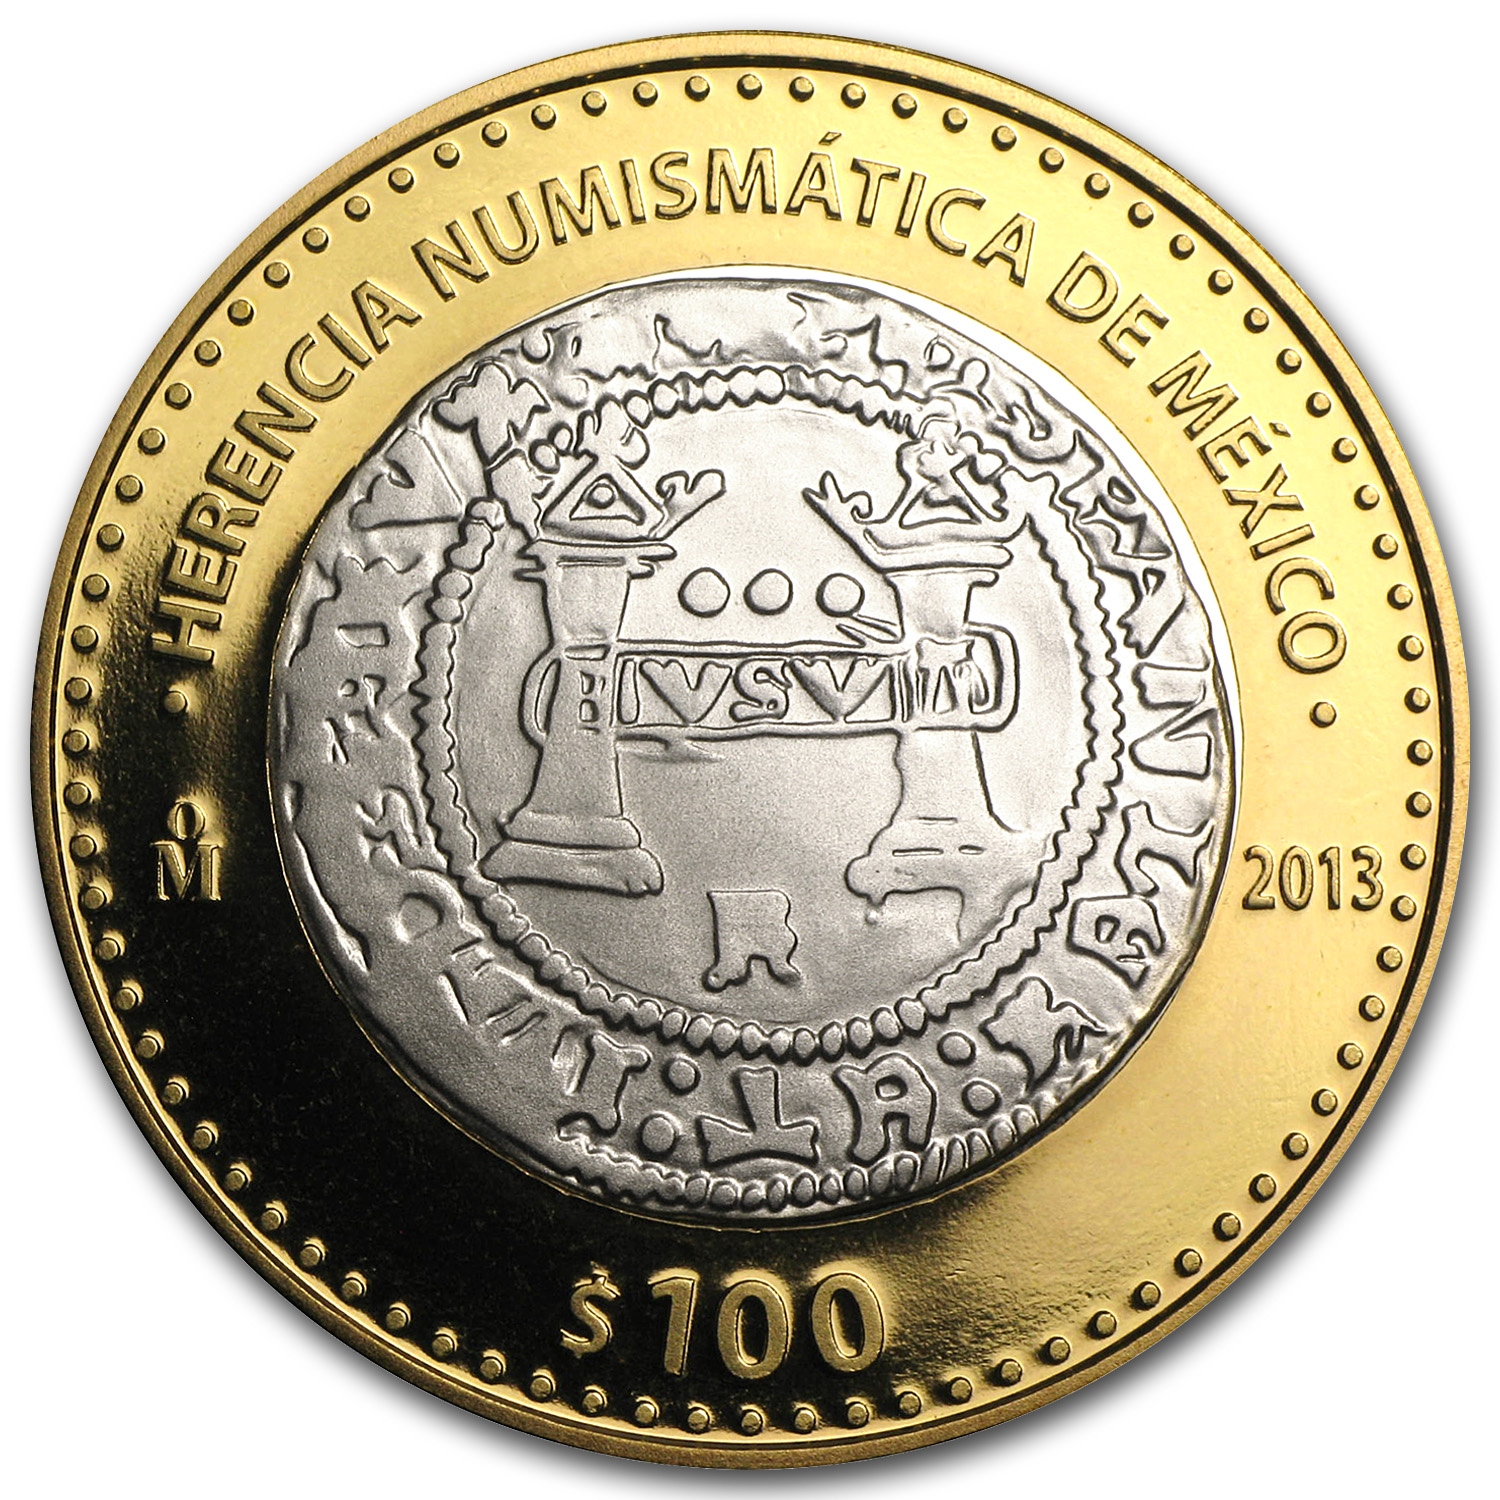 Numismatic Heritage Of Mexico - Series III